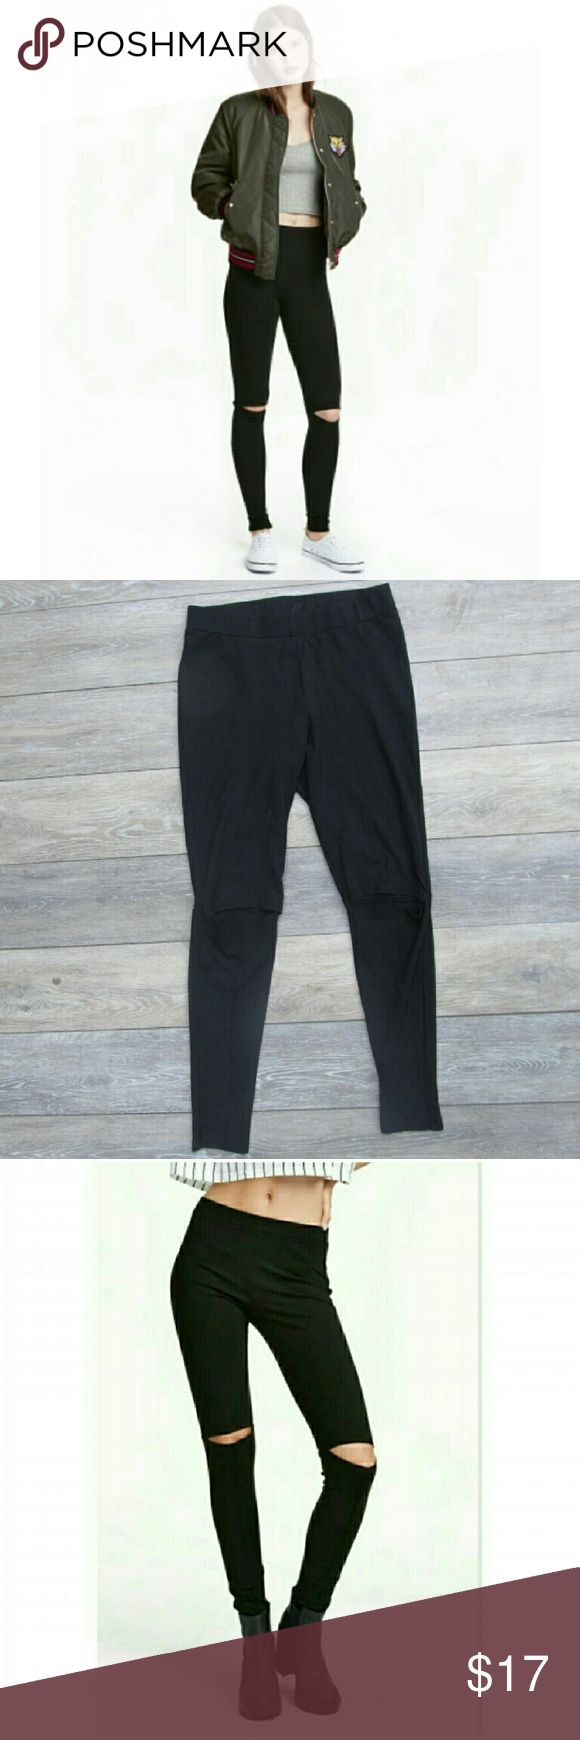 NWOT H&M Cut Out Knee Black Leggings Small Awesome leggings! Solid Black Cut out knee  I bought these are they are a little too big on me. I like my leggings to be very form fitting. I usually wear an xs-s and in jeans a 24-25. I think these would be good for a small to medium.  Materials are in last photos. They are not thin leggings. A little on the thicker side but not very thick. They are definitely not see through. Feels like very good quality! H&M Pants Leggings